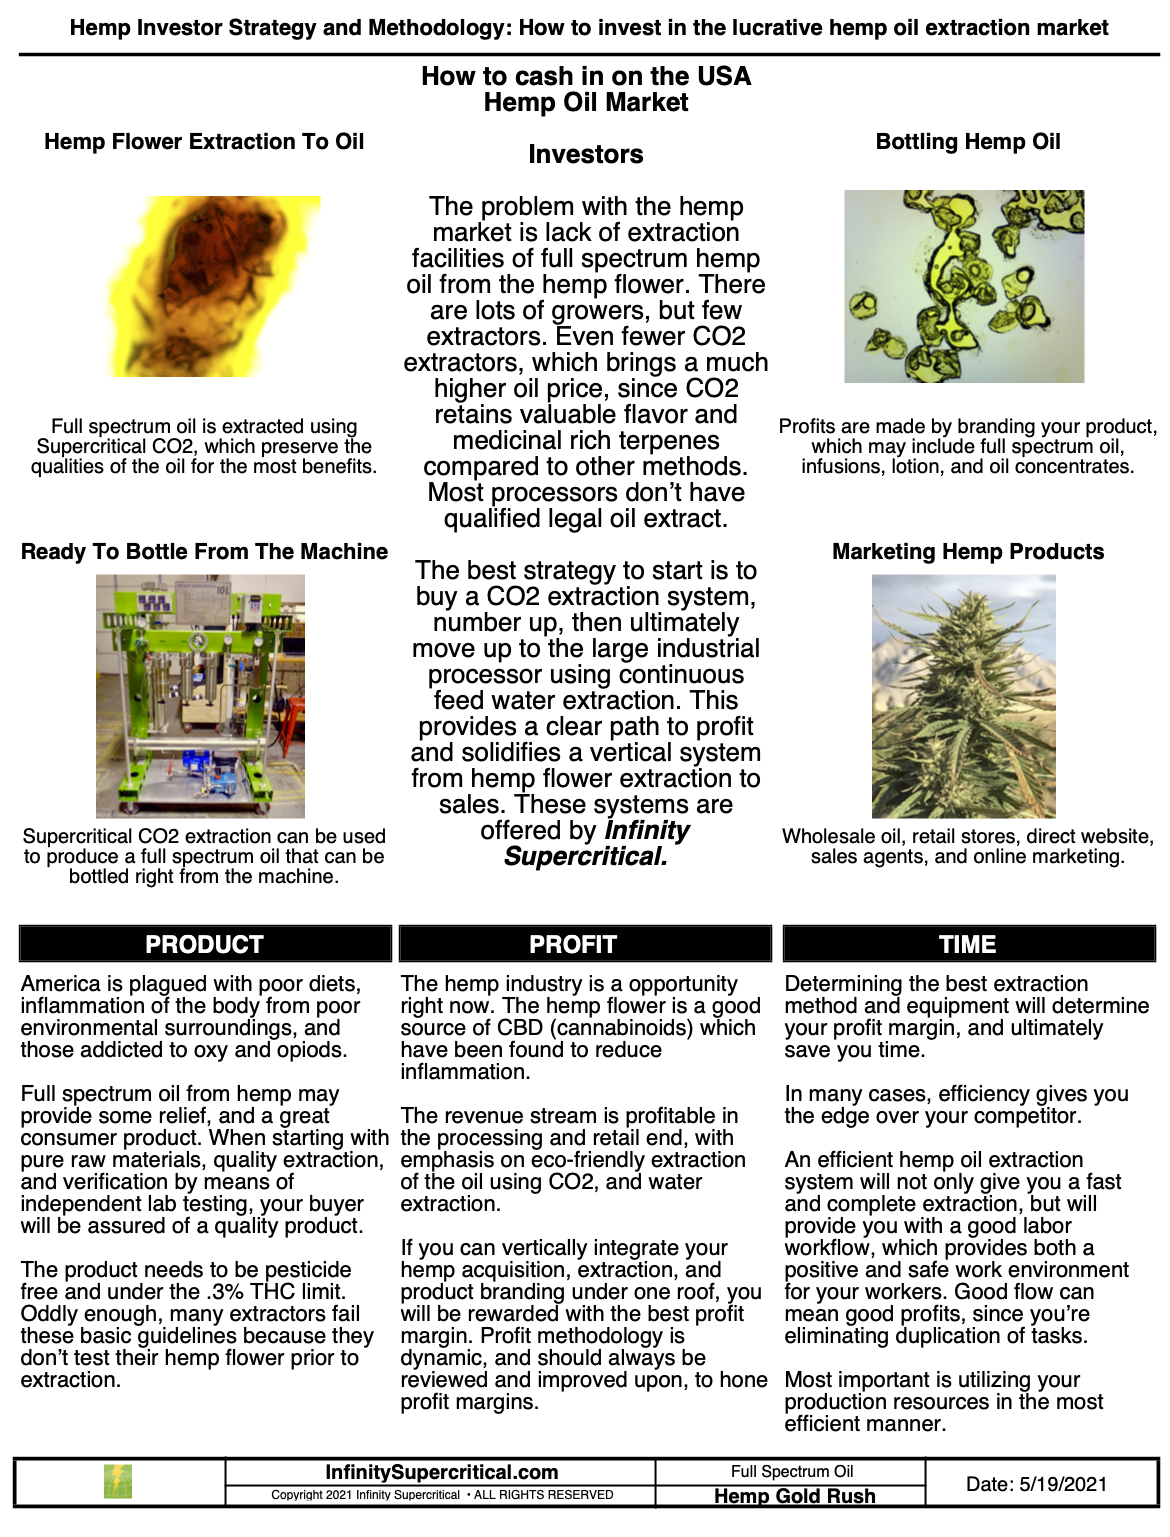 Hemp Investor and Business Strategy: Extract, Bottle, and Sell Direct